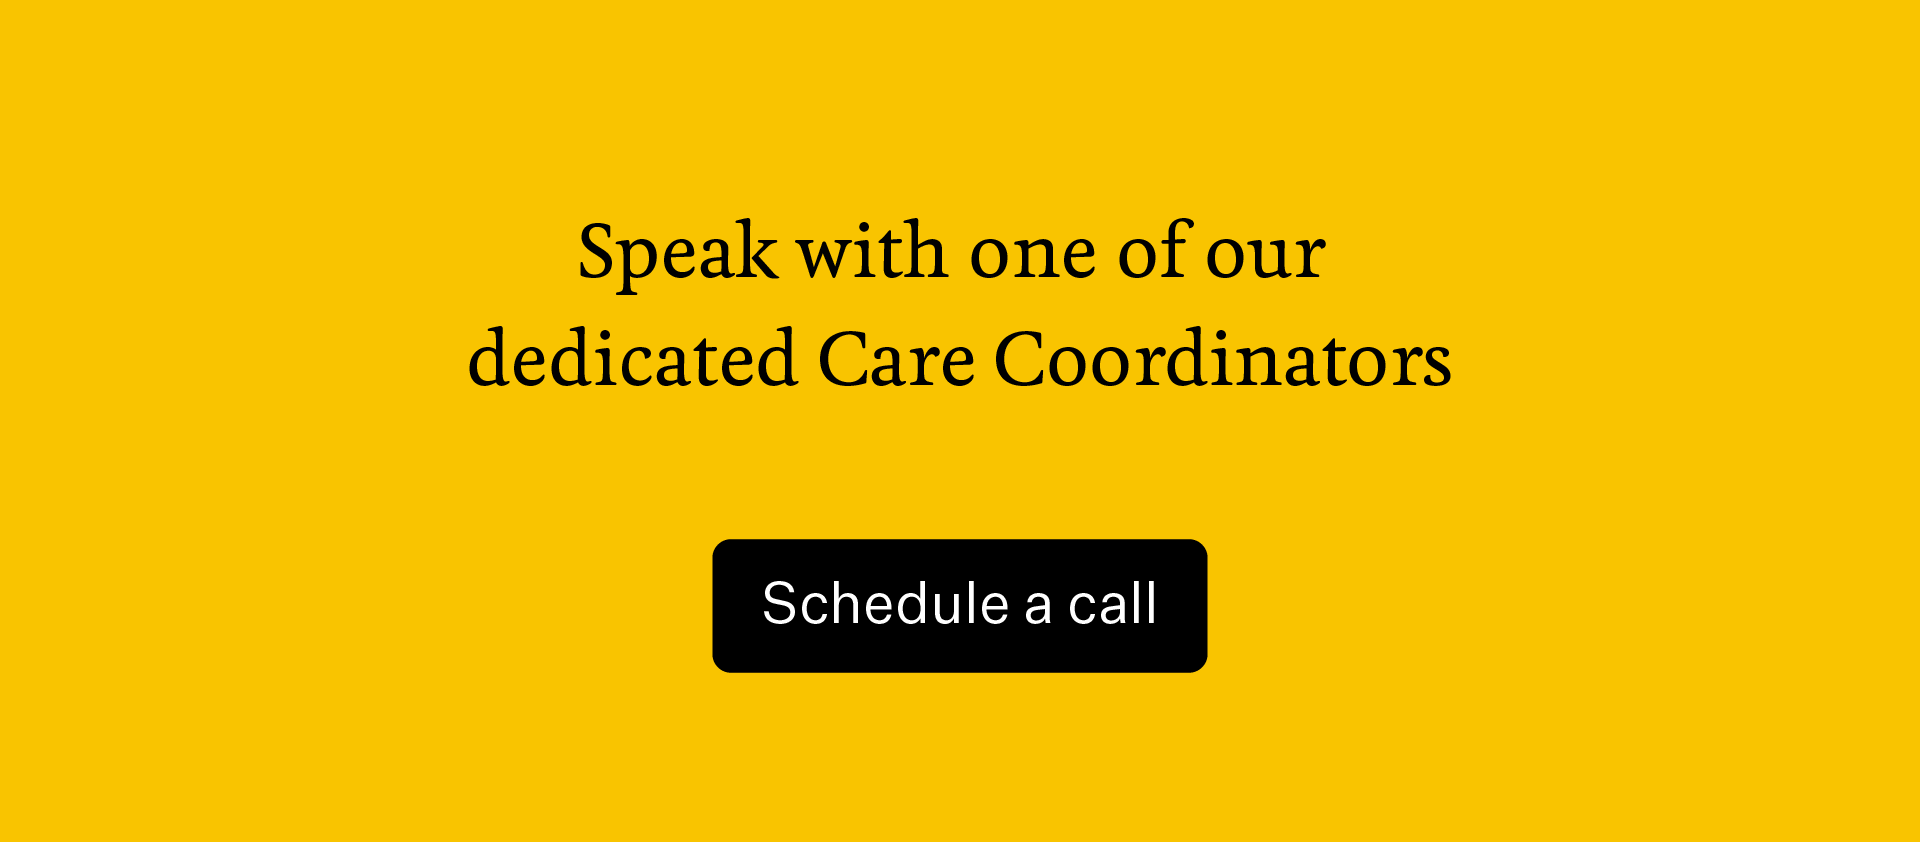 Find a therapist by contacting a Two Chairs Care Coordinator